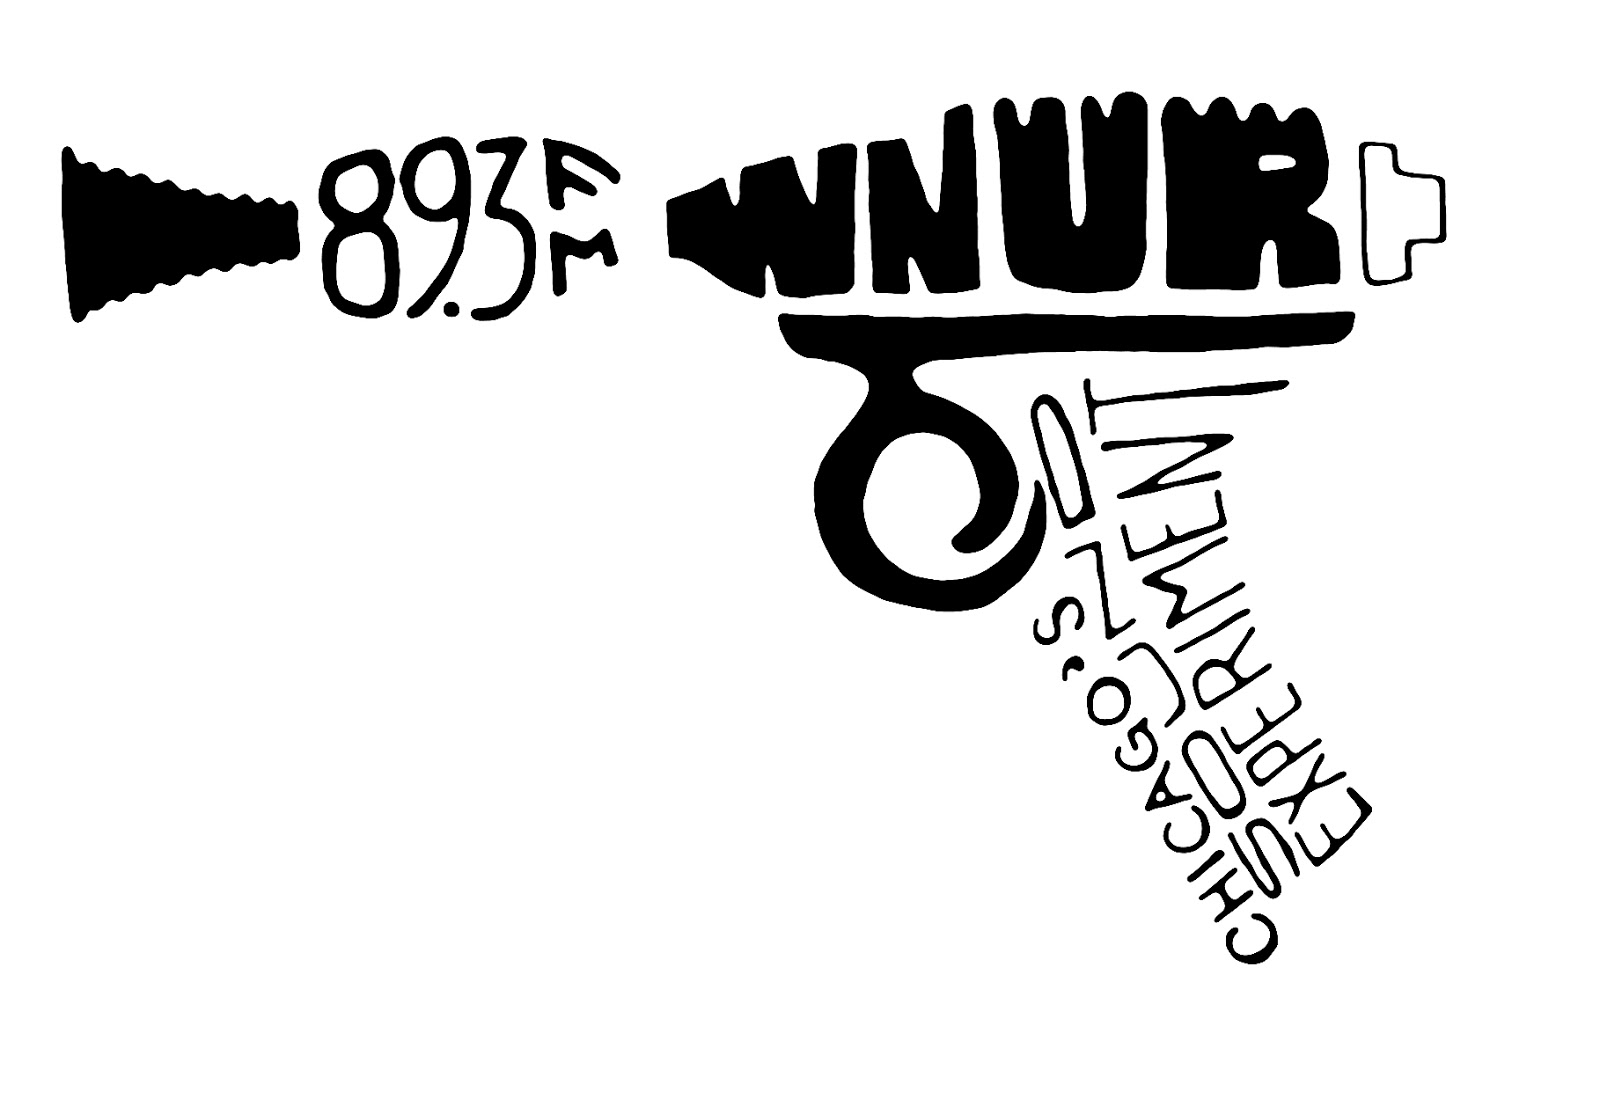 WNUR 89.3 FM- Northwestern University